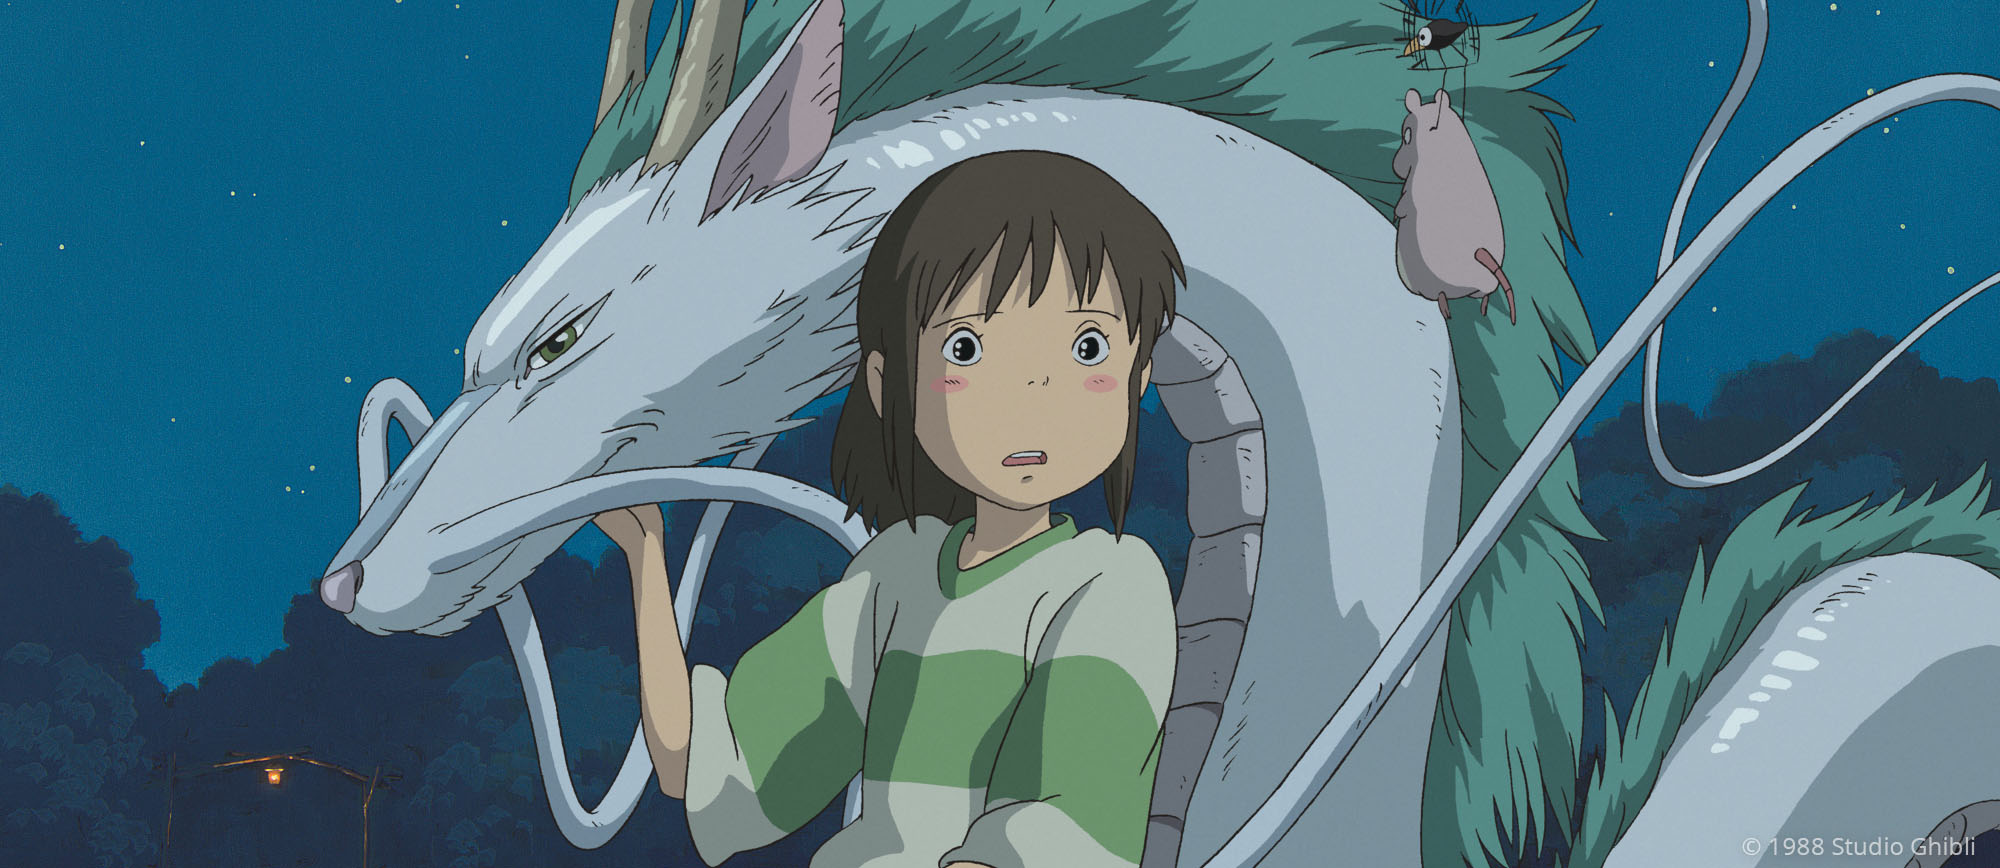 A photo from the animated film Spirited Away by Studio Ghibli